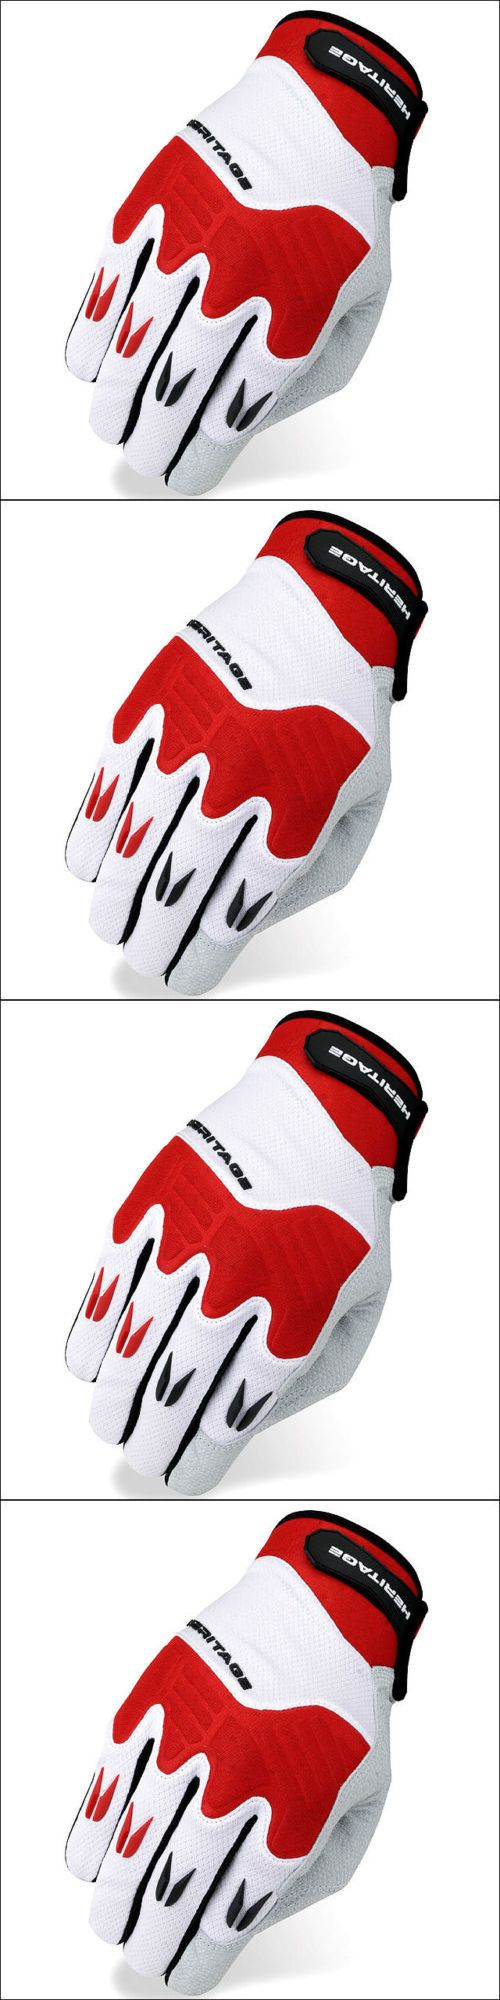 Riding Gloves 95104: 06 Size Heritage Polo Pro Horse Riding Equestrian Padded Glove White Red -> BUY IT NOW ONLY: $36.99 on eBay!